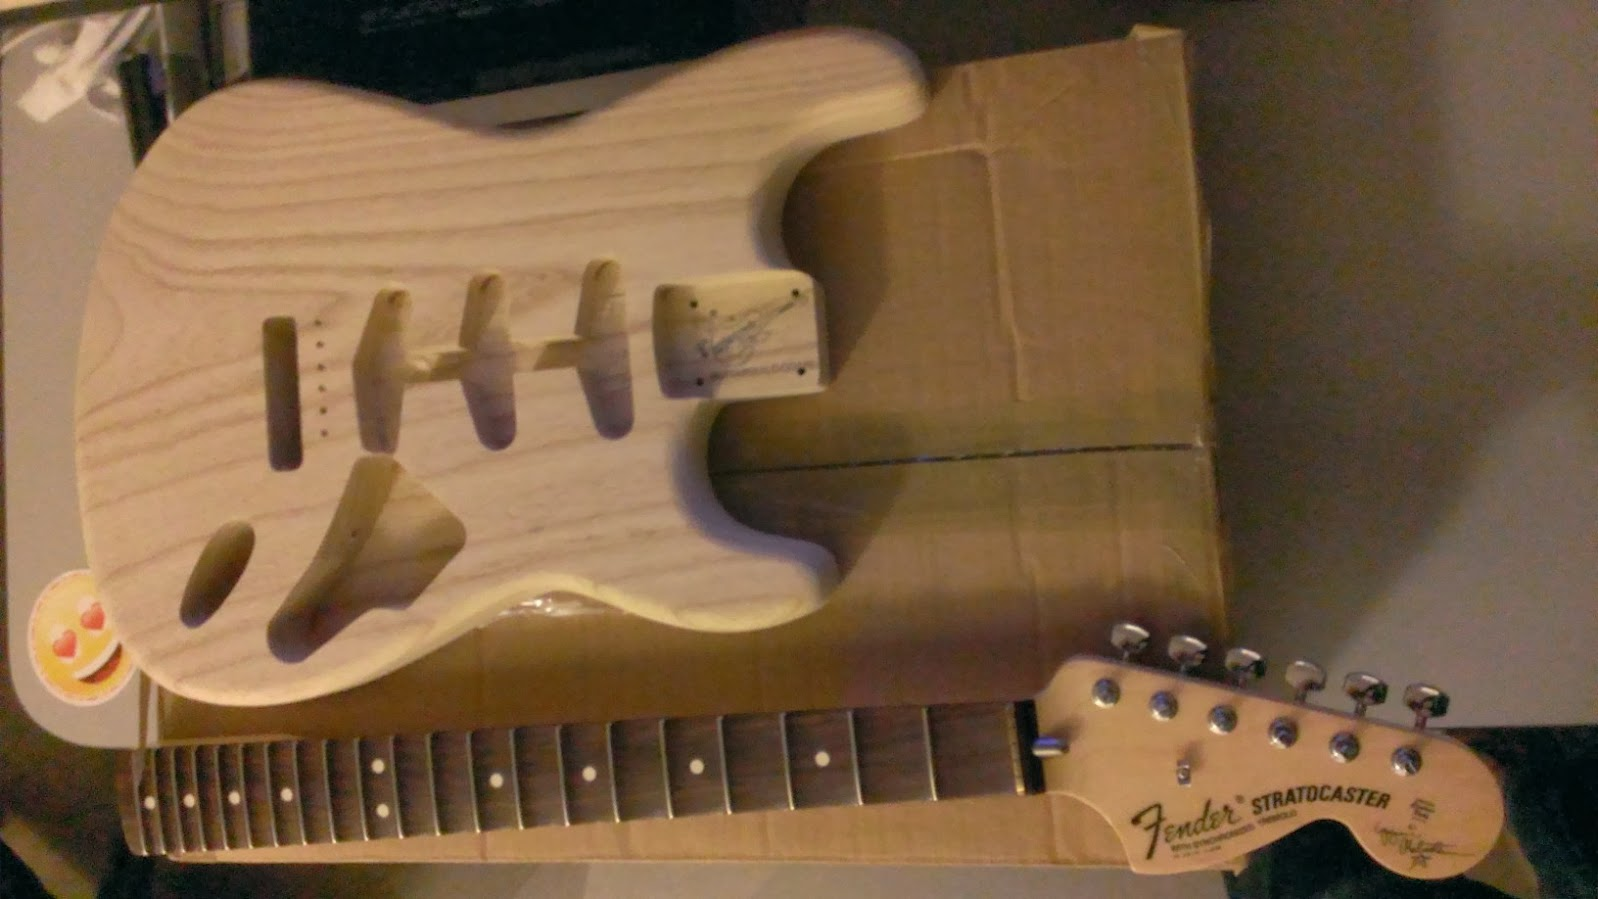 Construction fender malmsteen :-) (photos page 3) - Page 2 WP_20131217_004